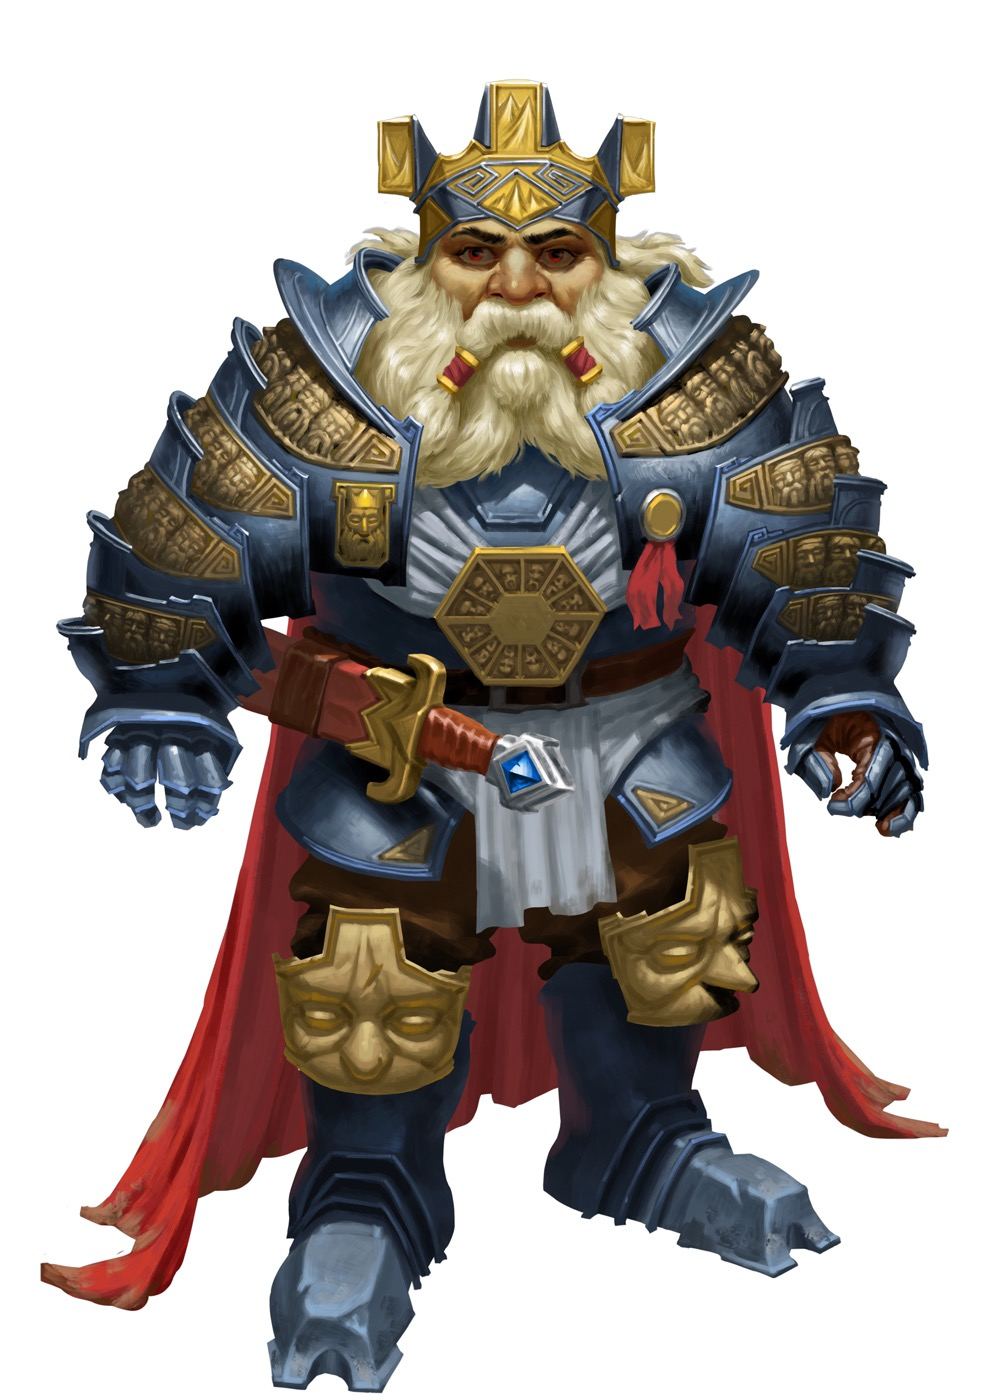 Taargick, legendary first king of the dwarves